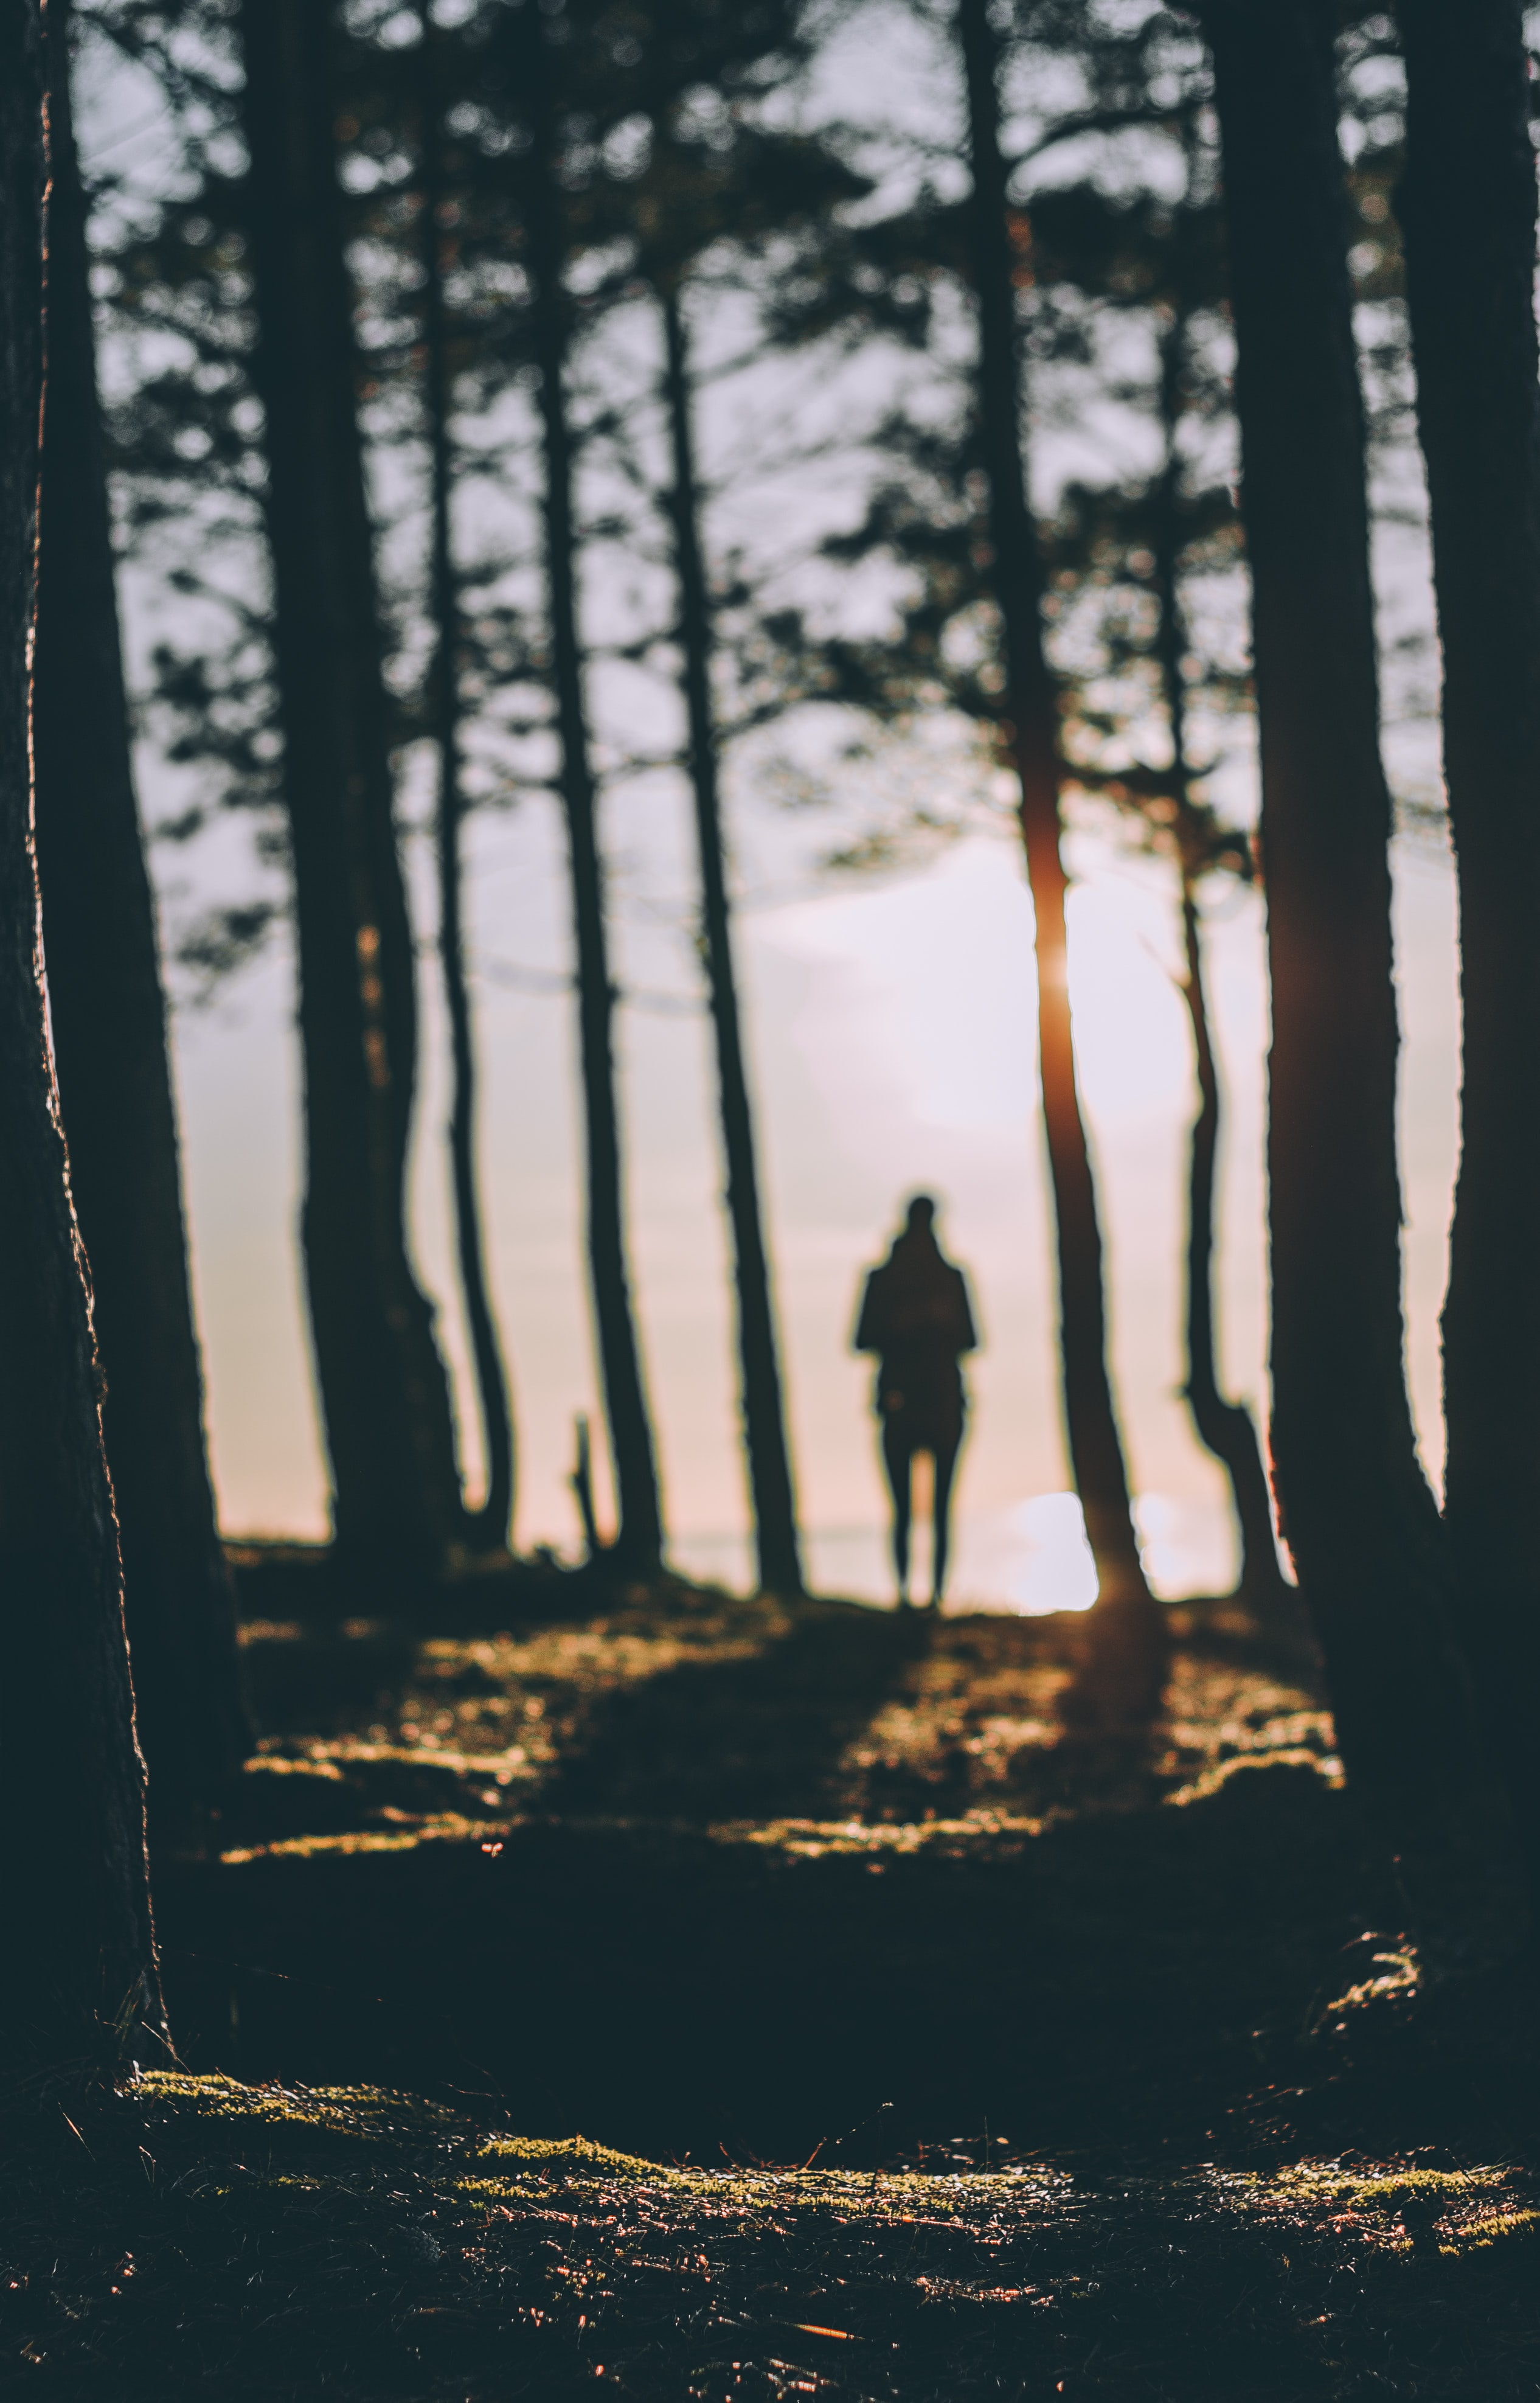 A silhouette of a person standing between tall conifers during sunset